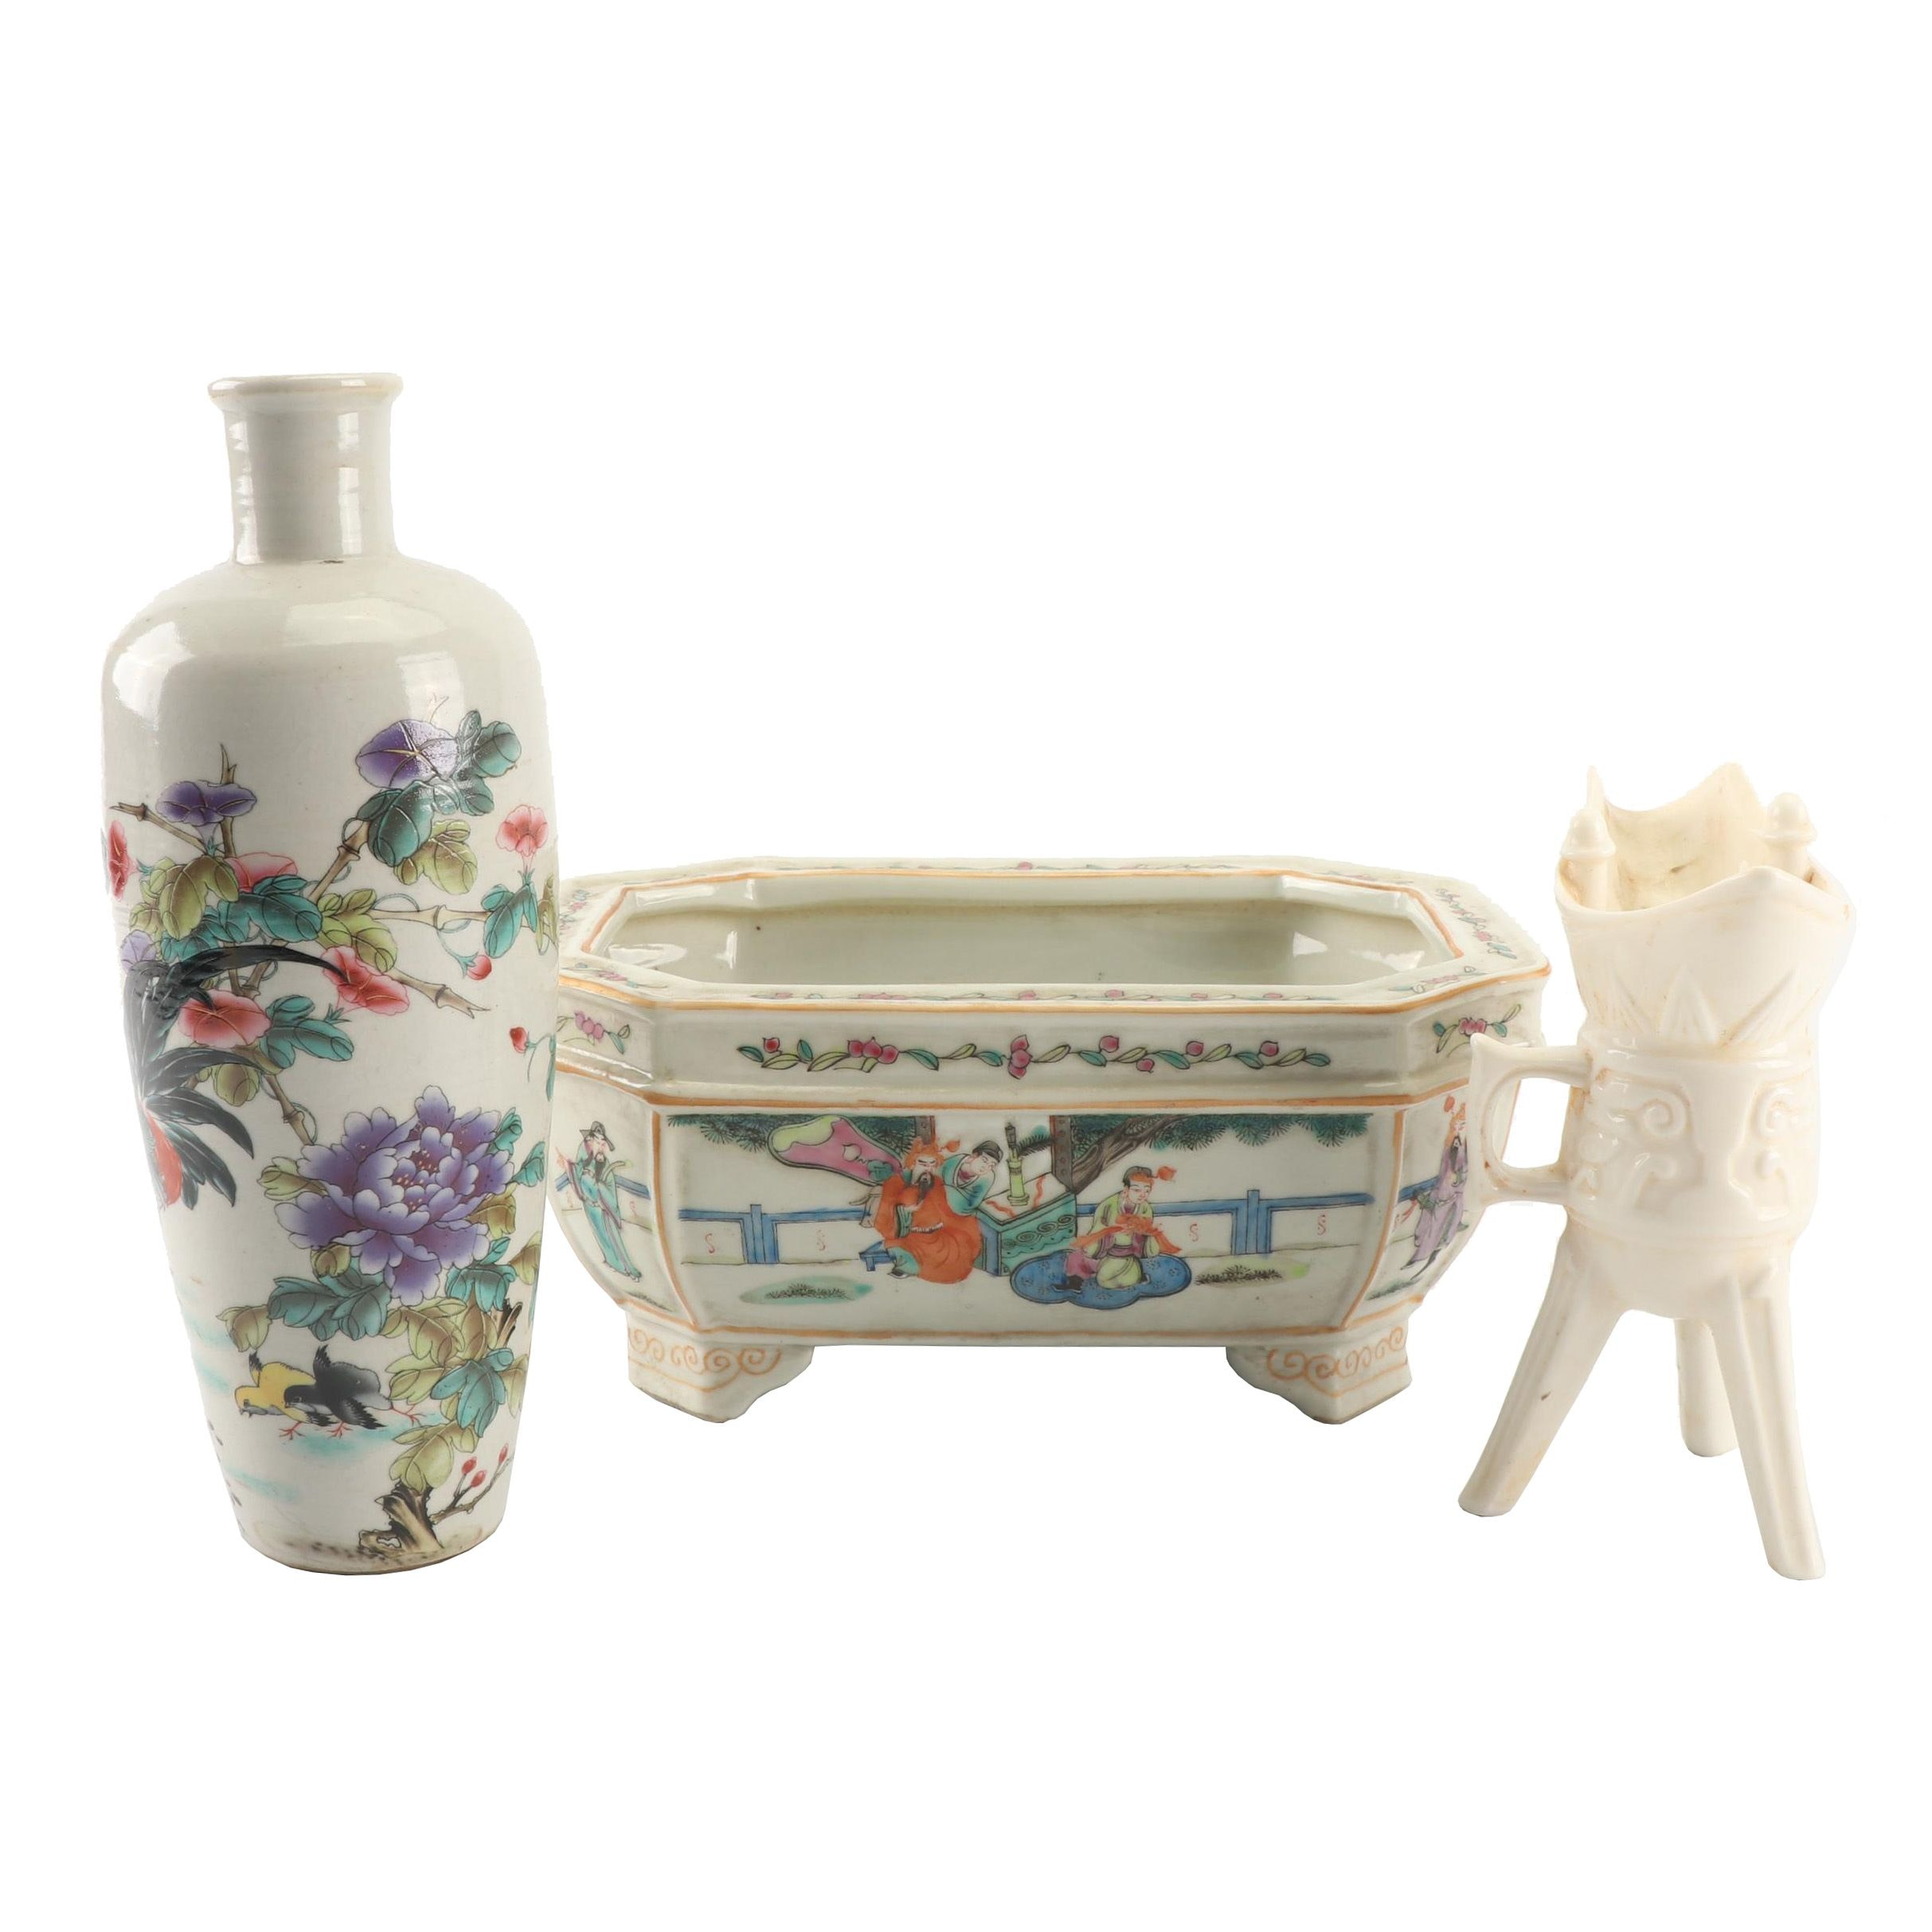 Chinese Hand-Painted Porcelain Vase and Planter with Wine Cup